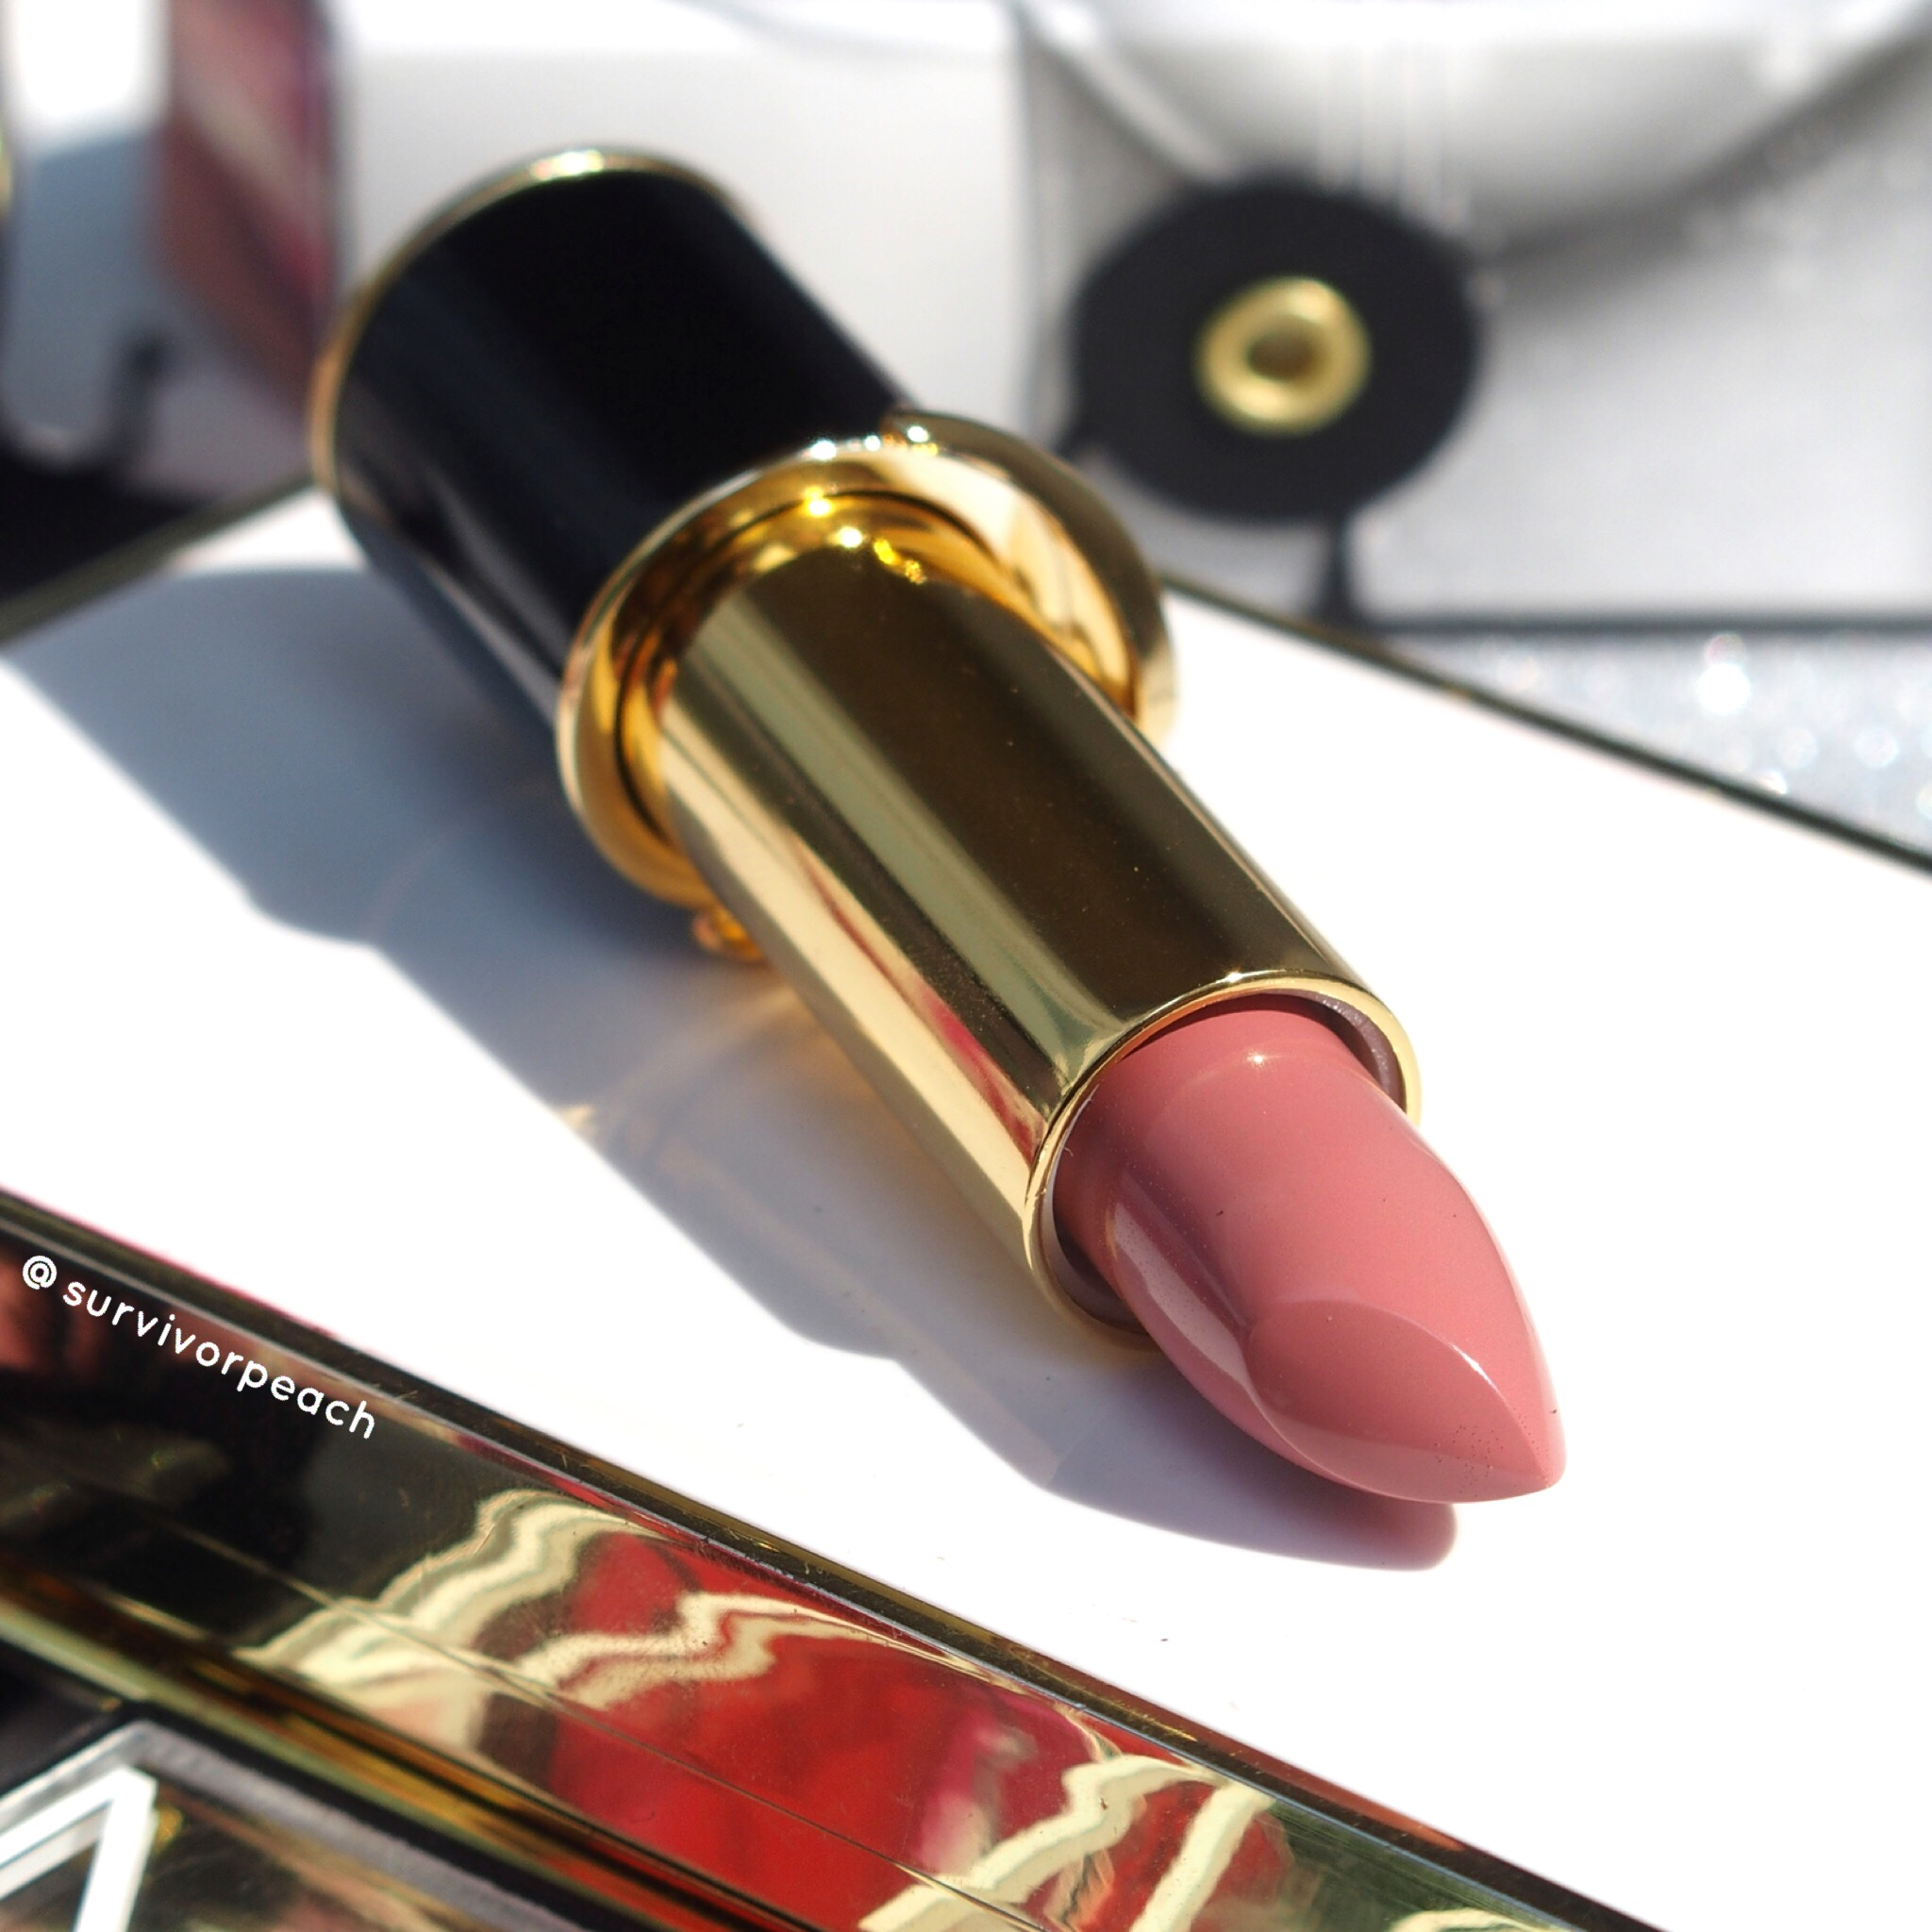 Pat McGrath Labs Luxe Trance Lipsticks in shade Sextrology